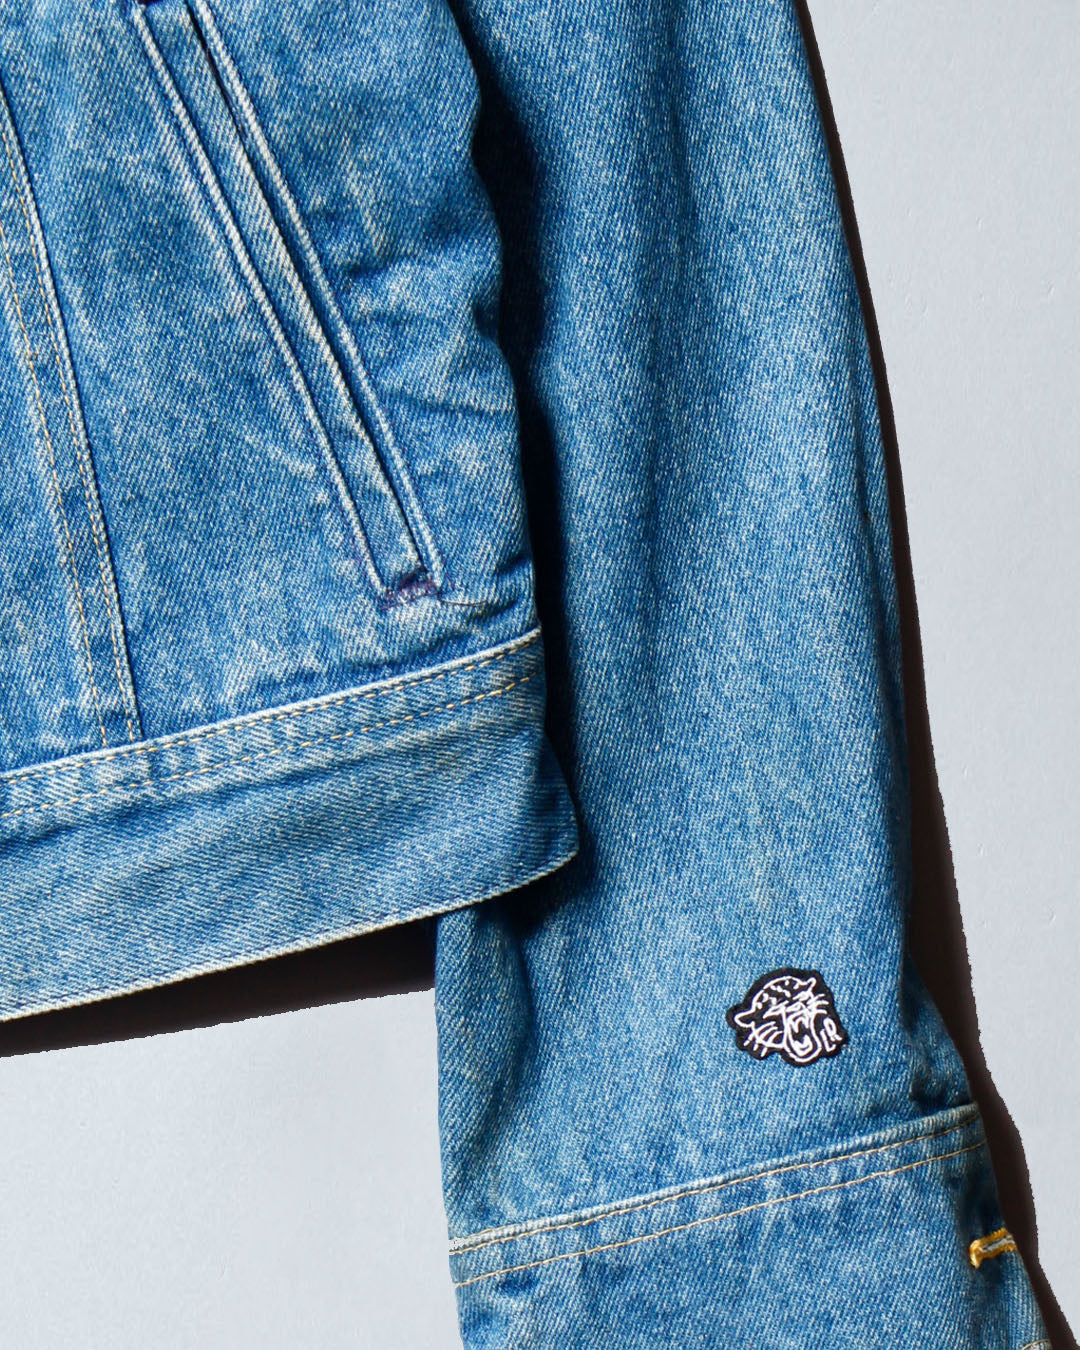 LIBEIRO vintage denim jacket